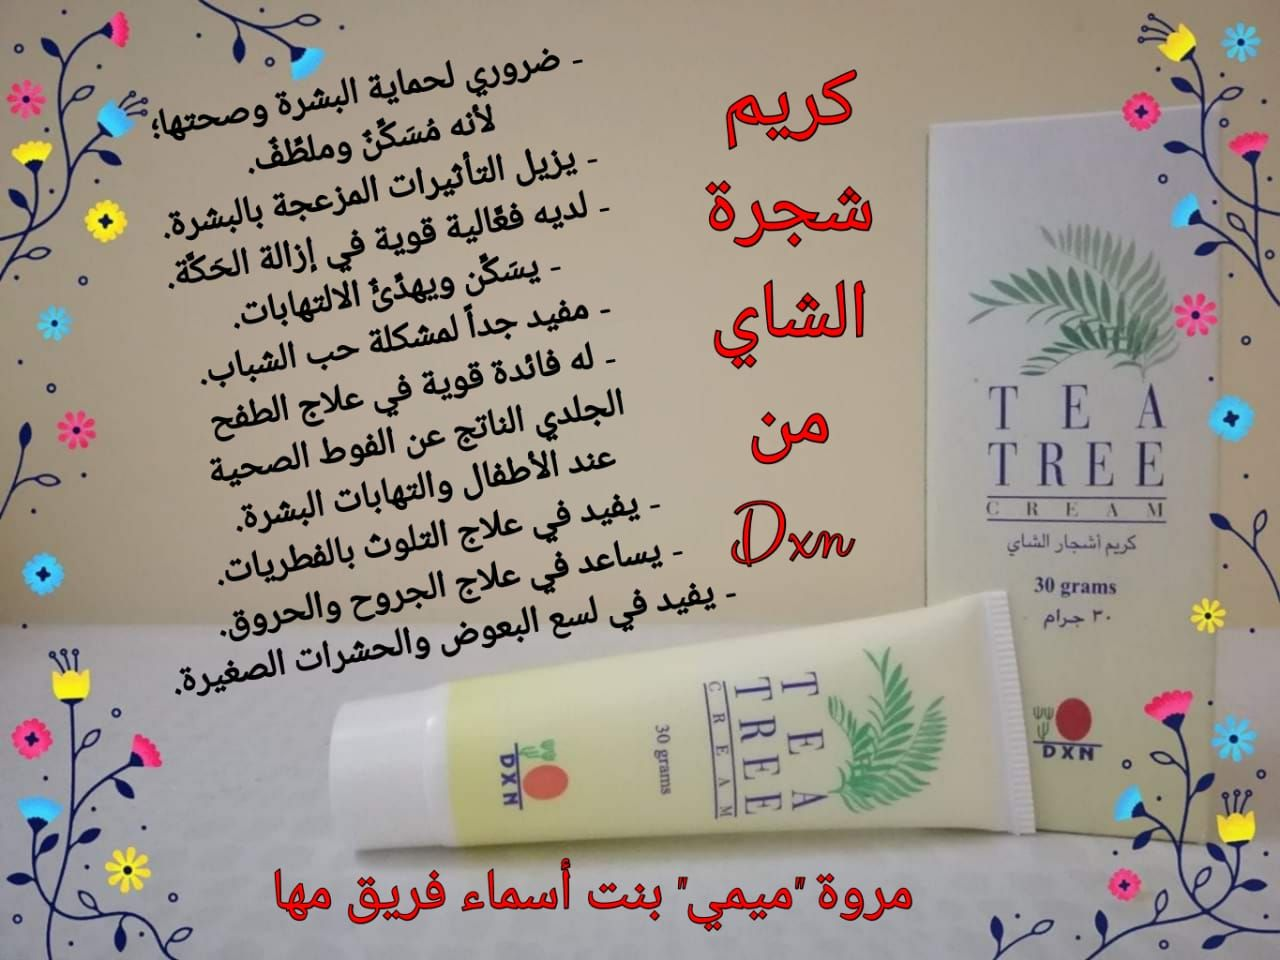 Pin By Dxn Ne On Dxn Toothpaste Personal Care Tea